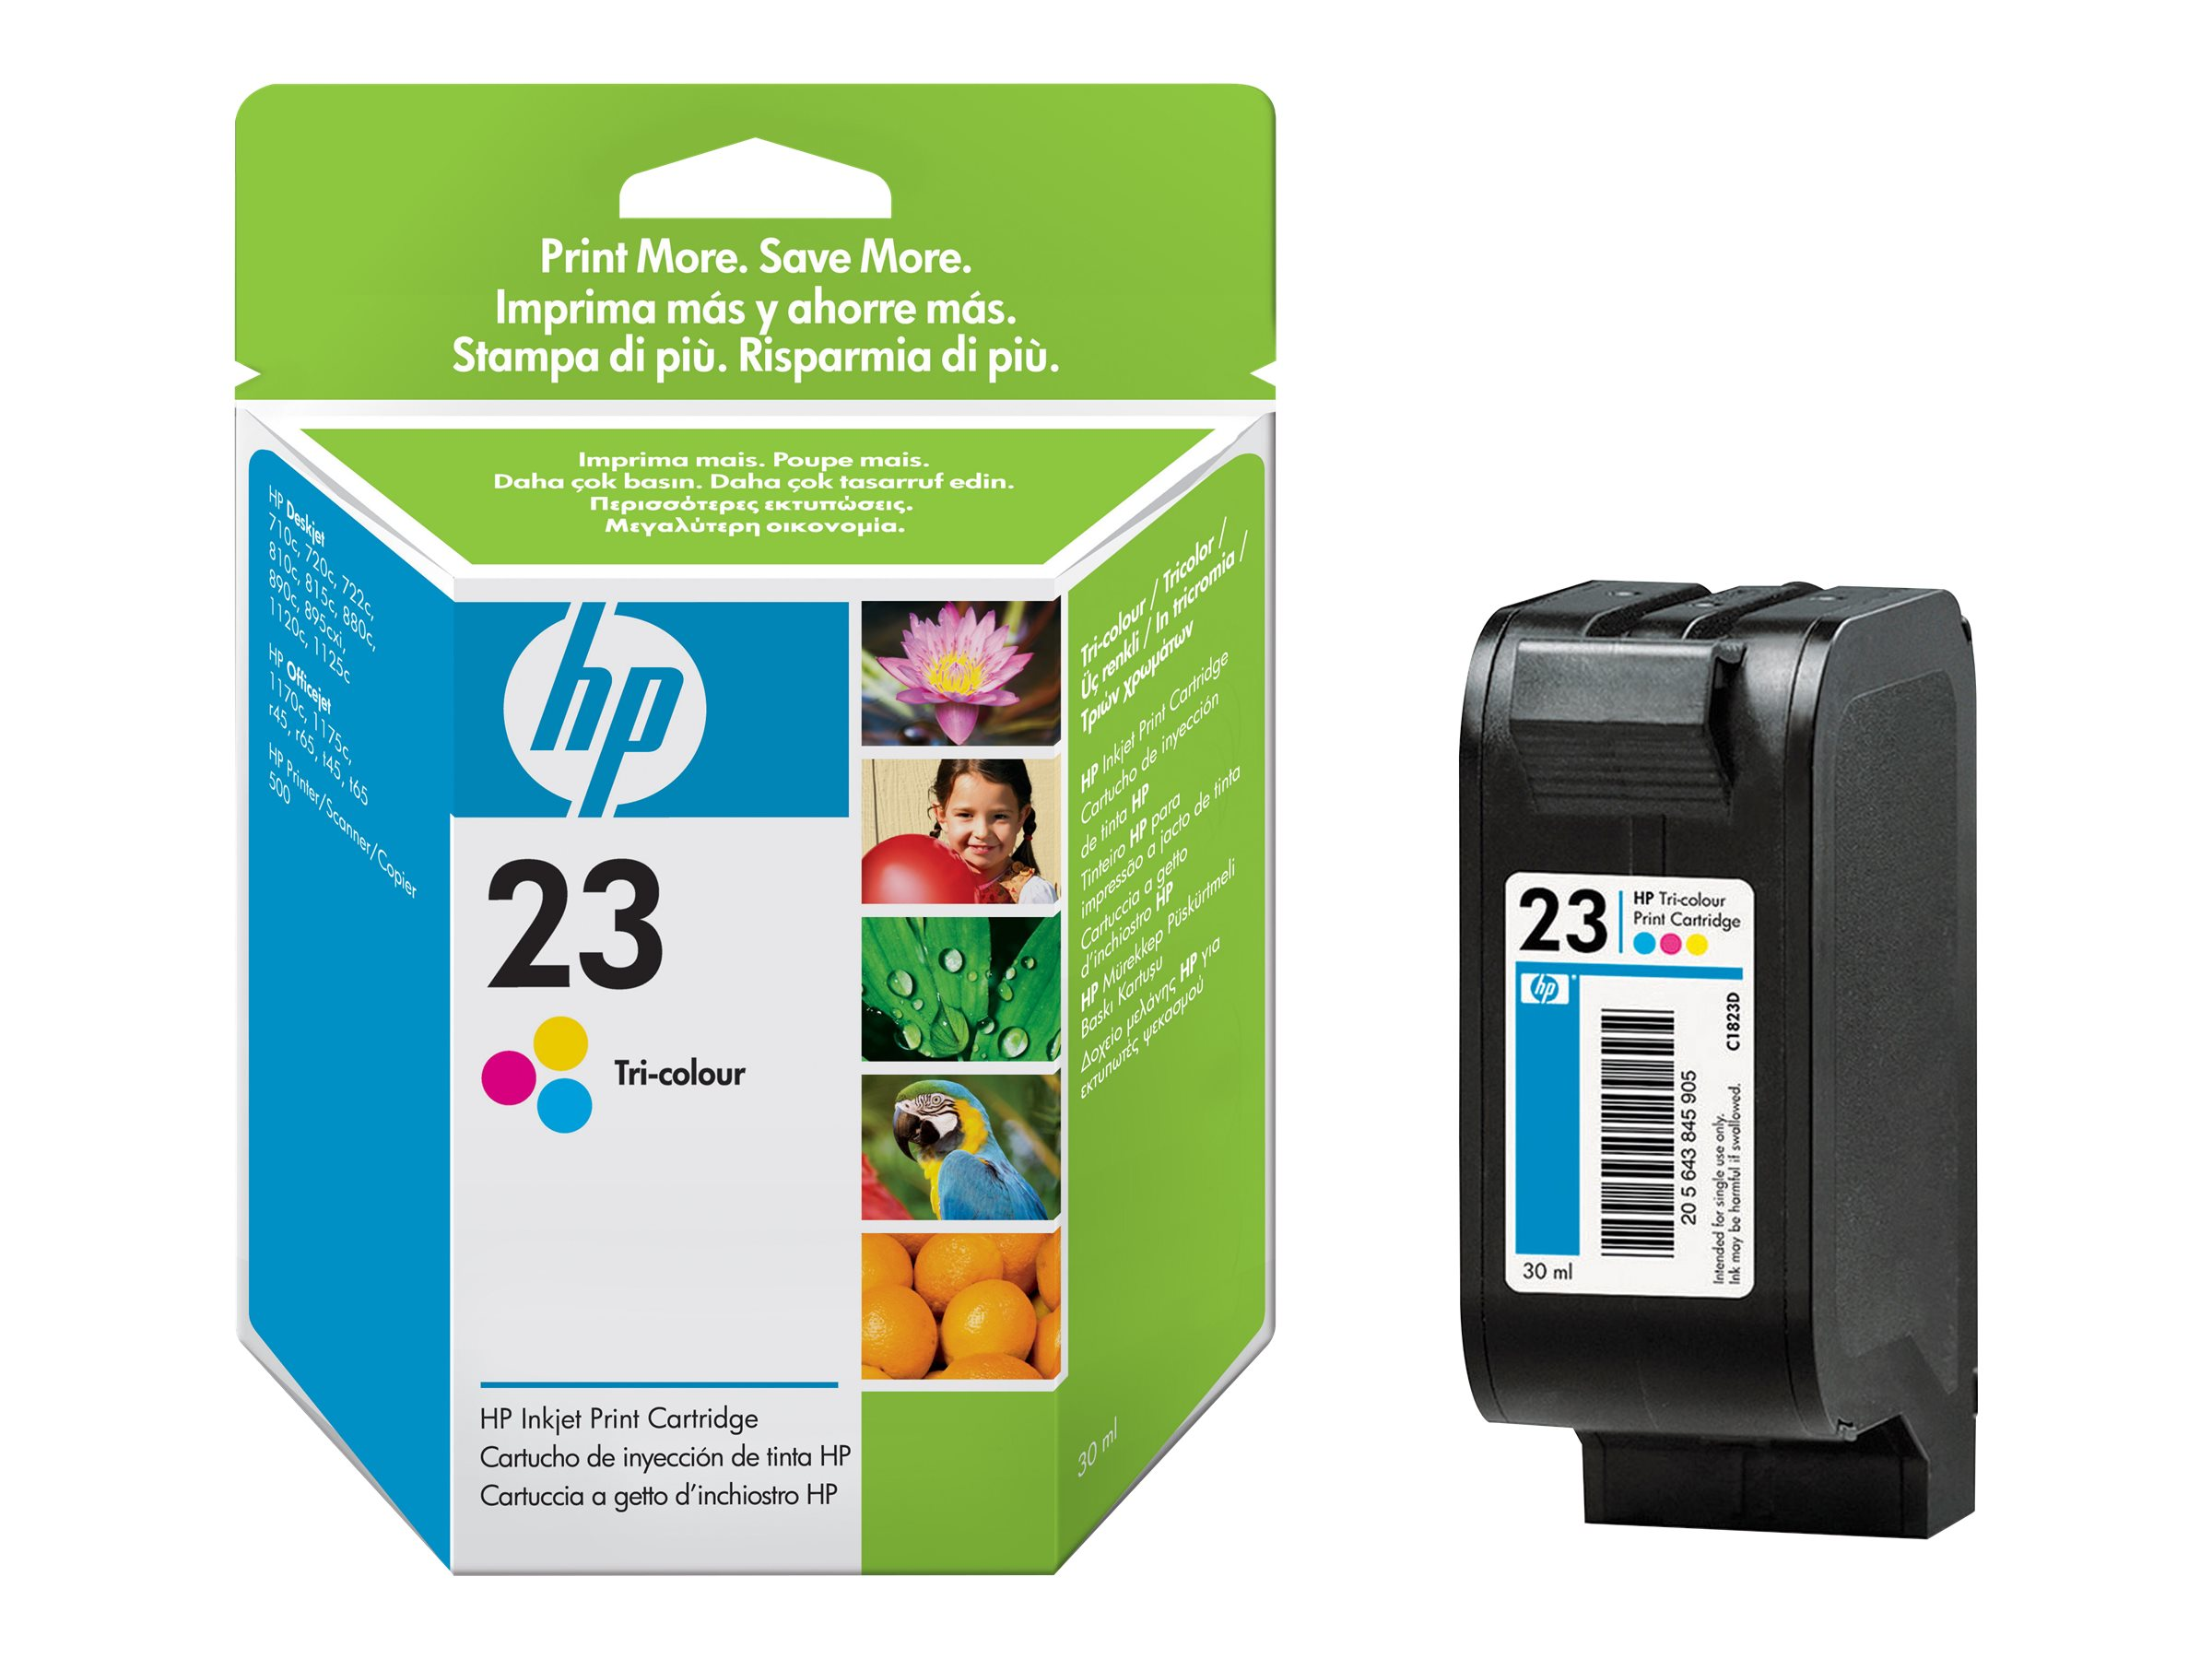 HP 23 - 30 ml - Farbe (Cyan, Magenta, Gelb) - Original - Tintenpatrone - für Color Copier 270; Officejet R40, R45, R60, R65, R80, T45, T65; Officejet Pro 11XX; psc 500